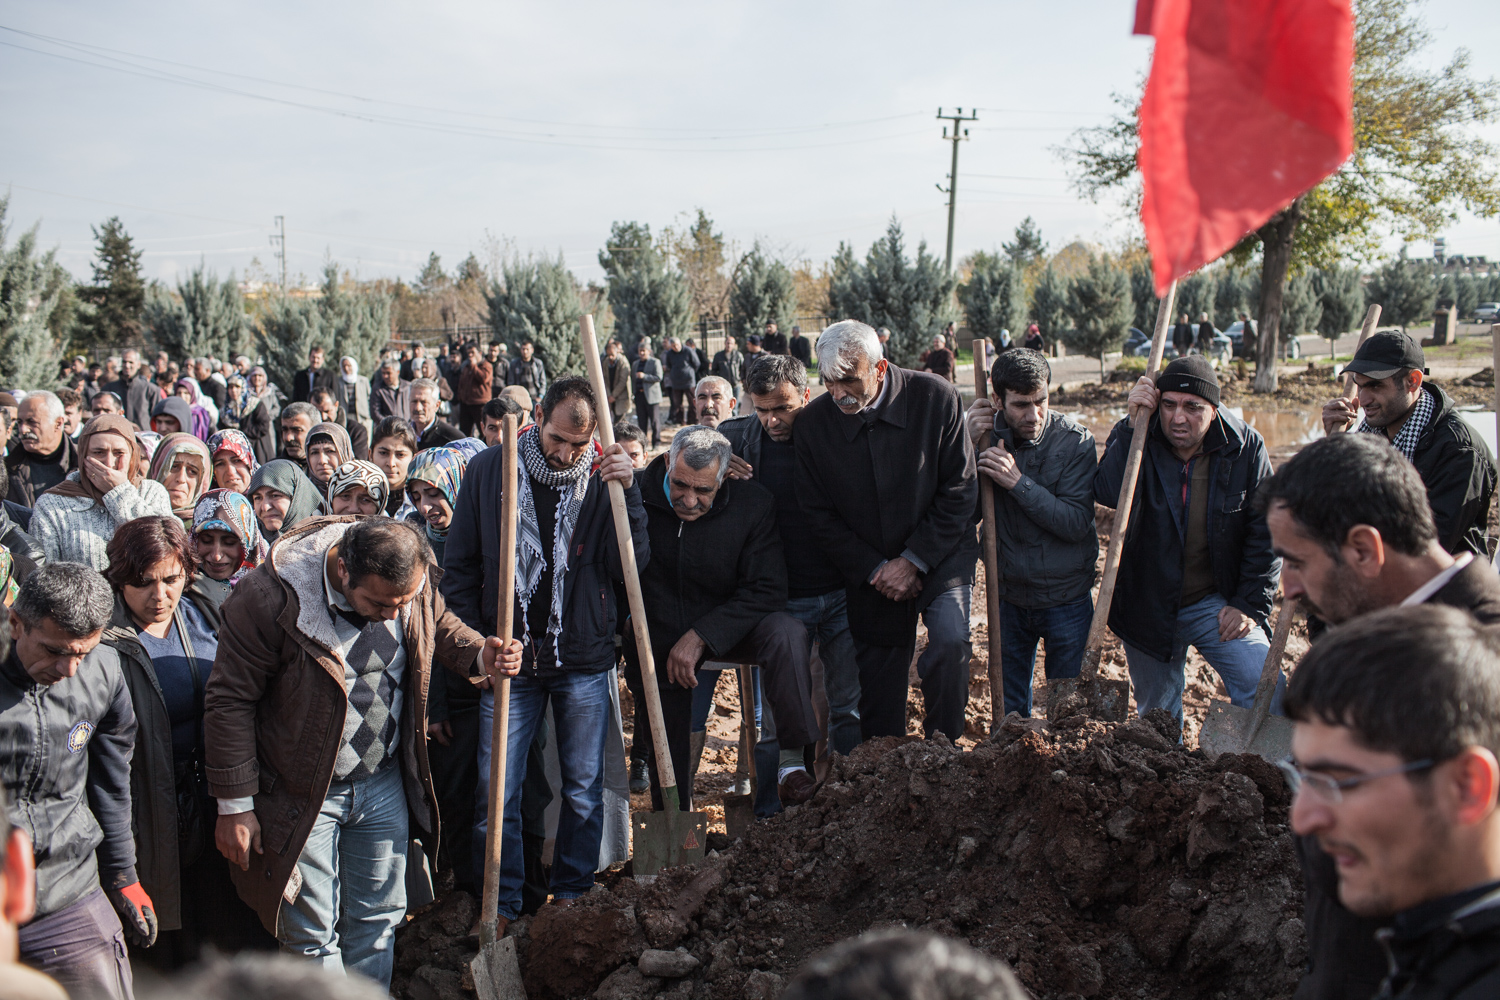 Burial of a female PKK fighter in Diyarbakir in Turkey. While men are seen digging the crave, women are crying in the background